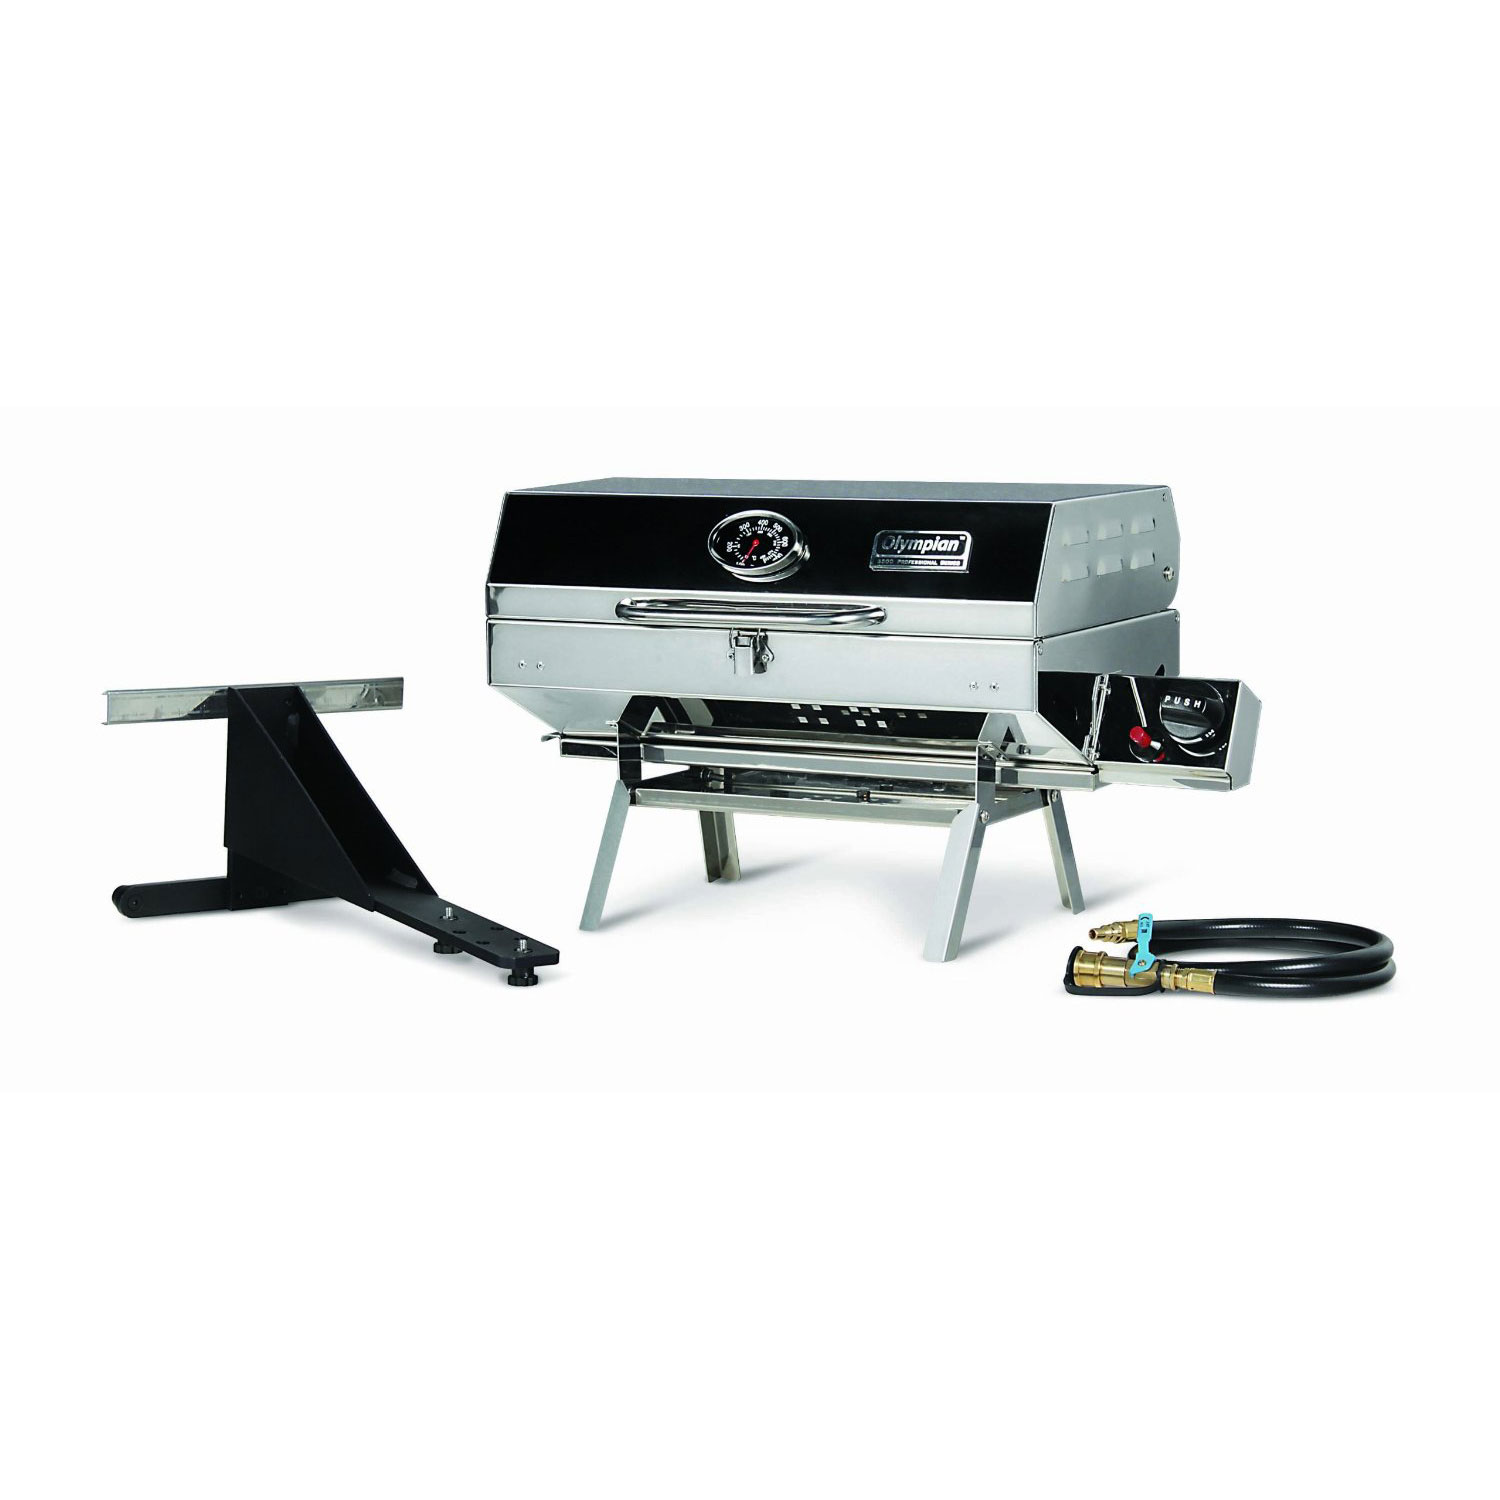 Camco 57305 Olympian 5500 Portable Propane Grill